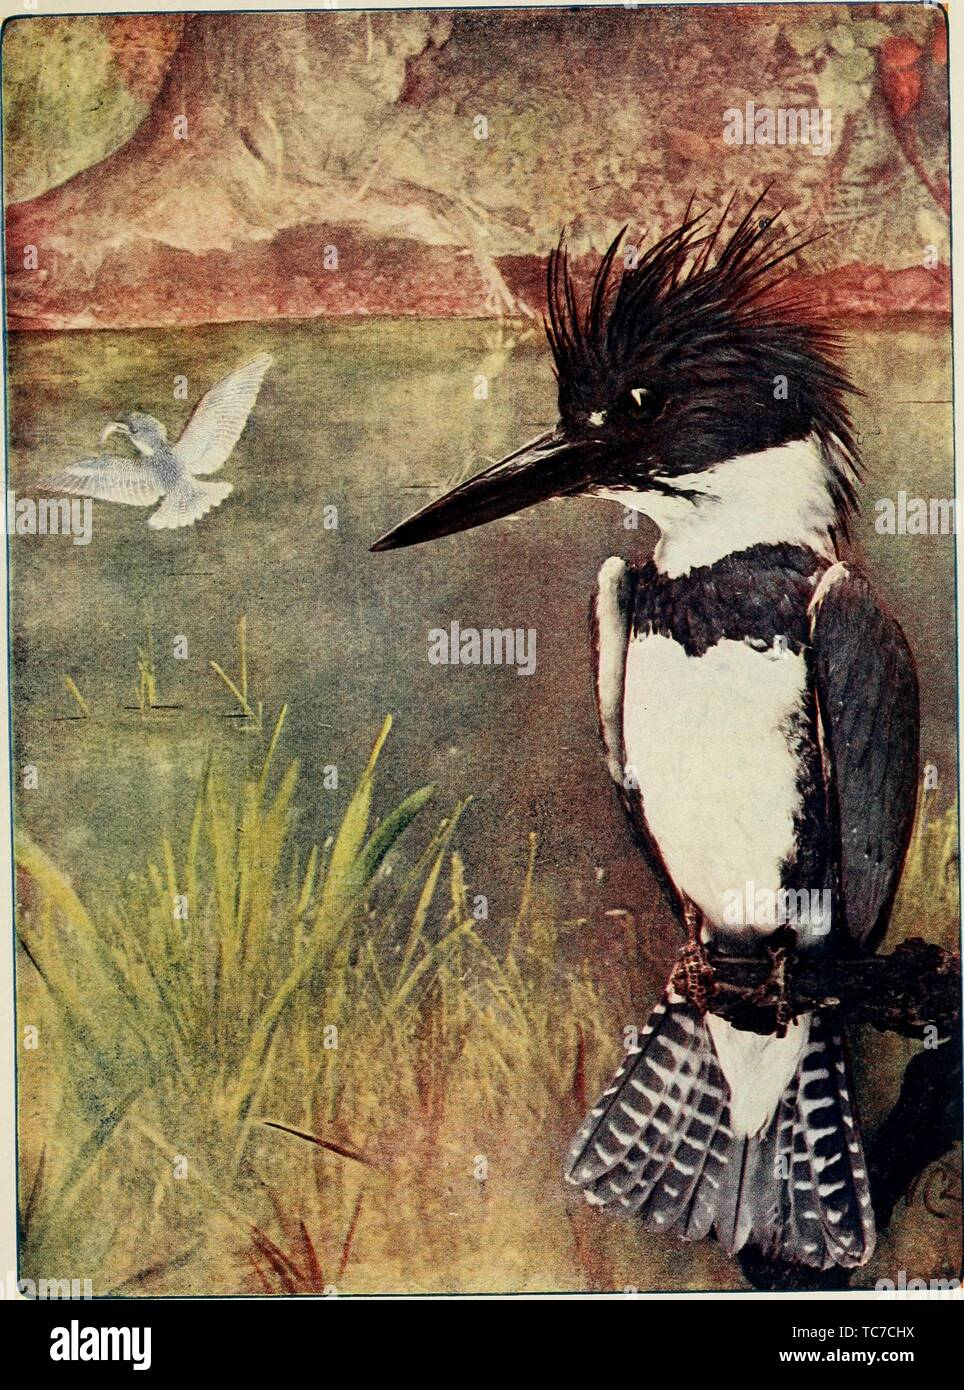 Engraved drawing of the Belted Kingfisher (Megaceryle alcyon), from the book 'Bird neighbors' by Neltje Blanchan, 1904. Courtesy Internet Archive. () - Stock Image